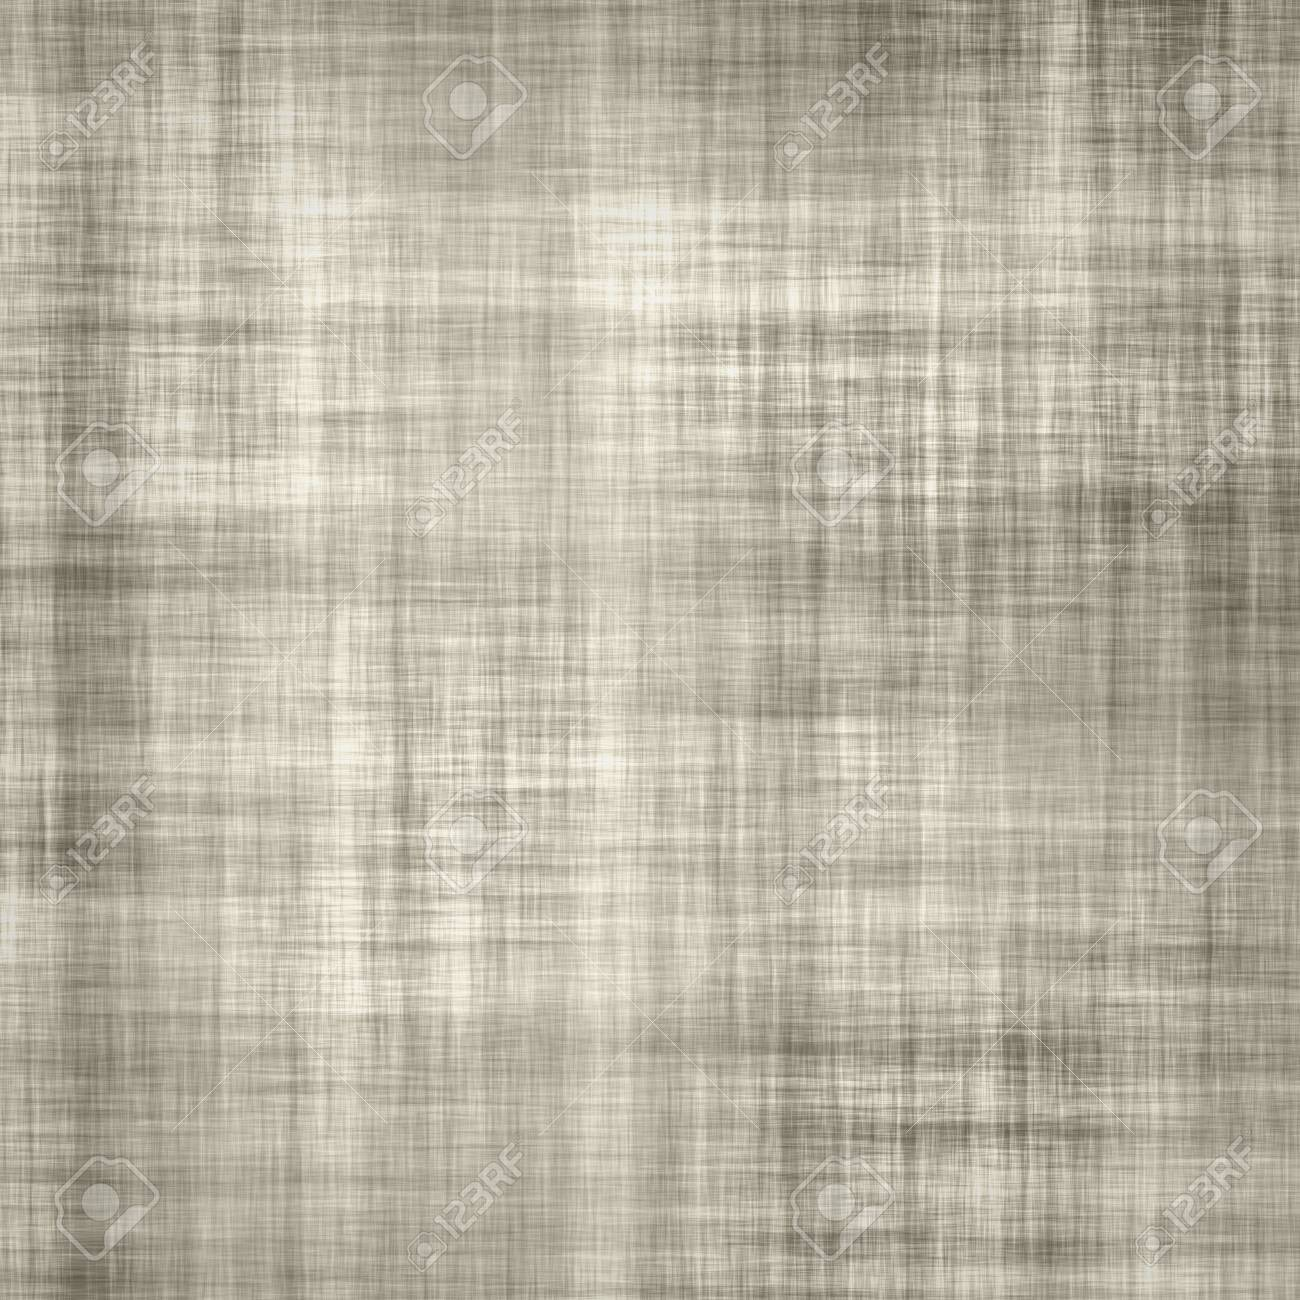 Seamless Texture Gray Canvas As Background A High Resolution Stock Photo